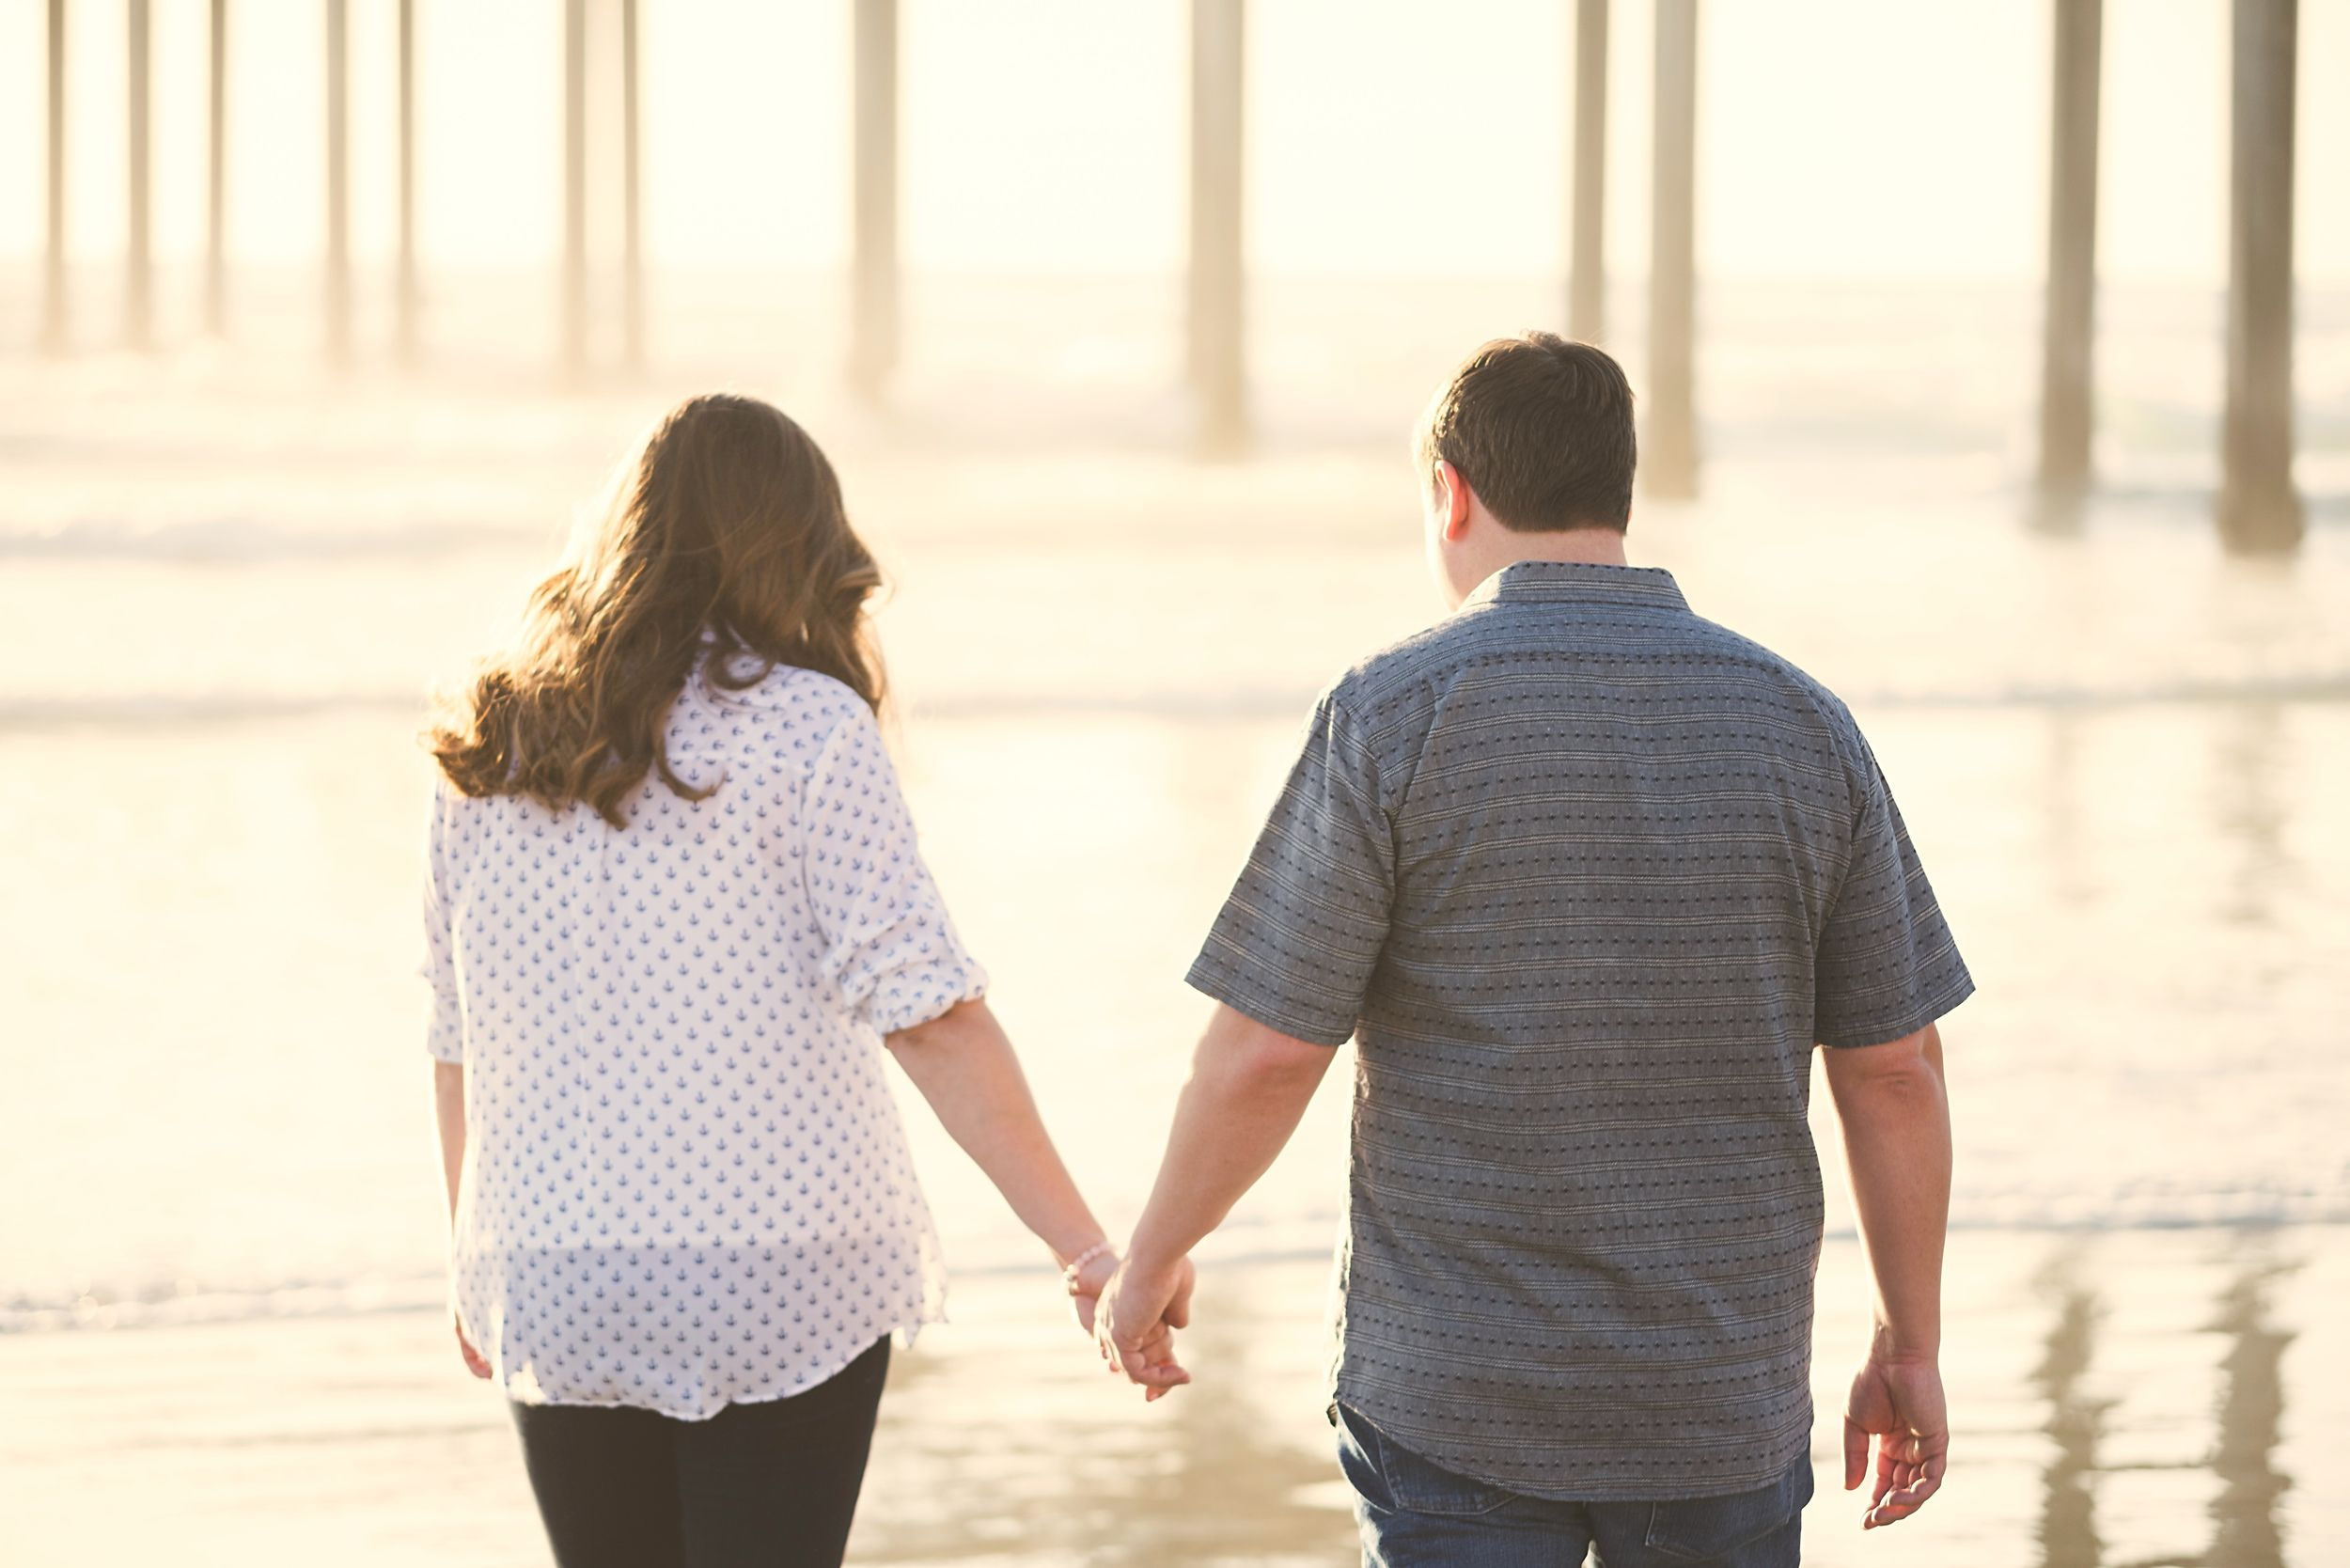 What a great location for an engagement session in San Diego! Modern Engagement Session at Scripps Seaside Forum and Scripps Pier—Modern Romantic Engagement Photos- San Diego Wedding Photography  - for more ideas and wedding & engagement photography inspiration, check out my blog! www.britjaye.com/blog #sandiegoengagementphotography #engagementphotography #engagementphotos #weddingphotographer